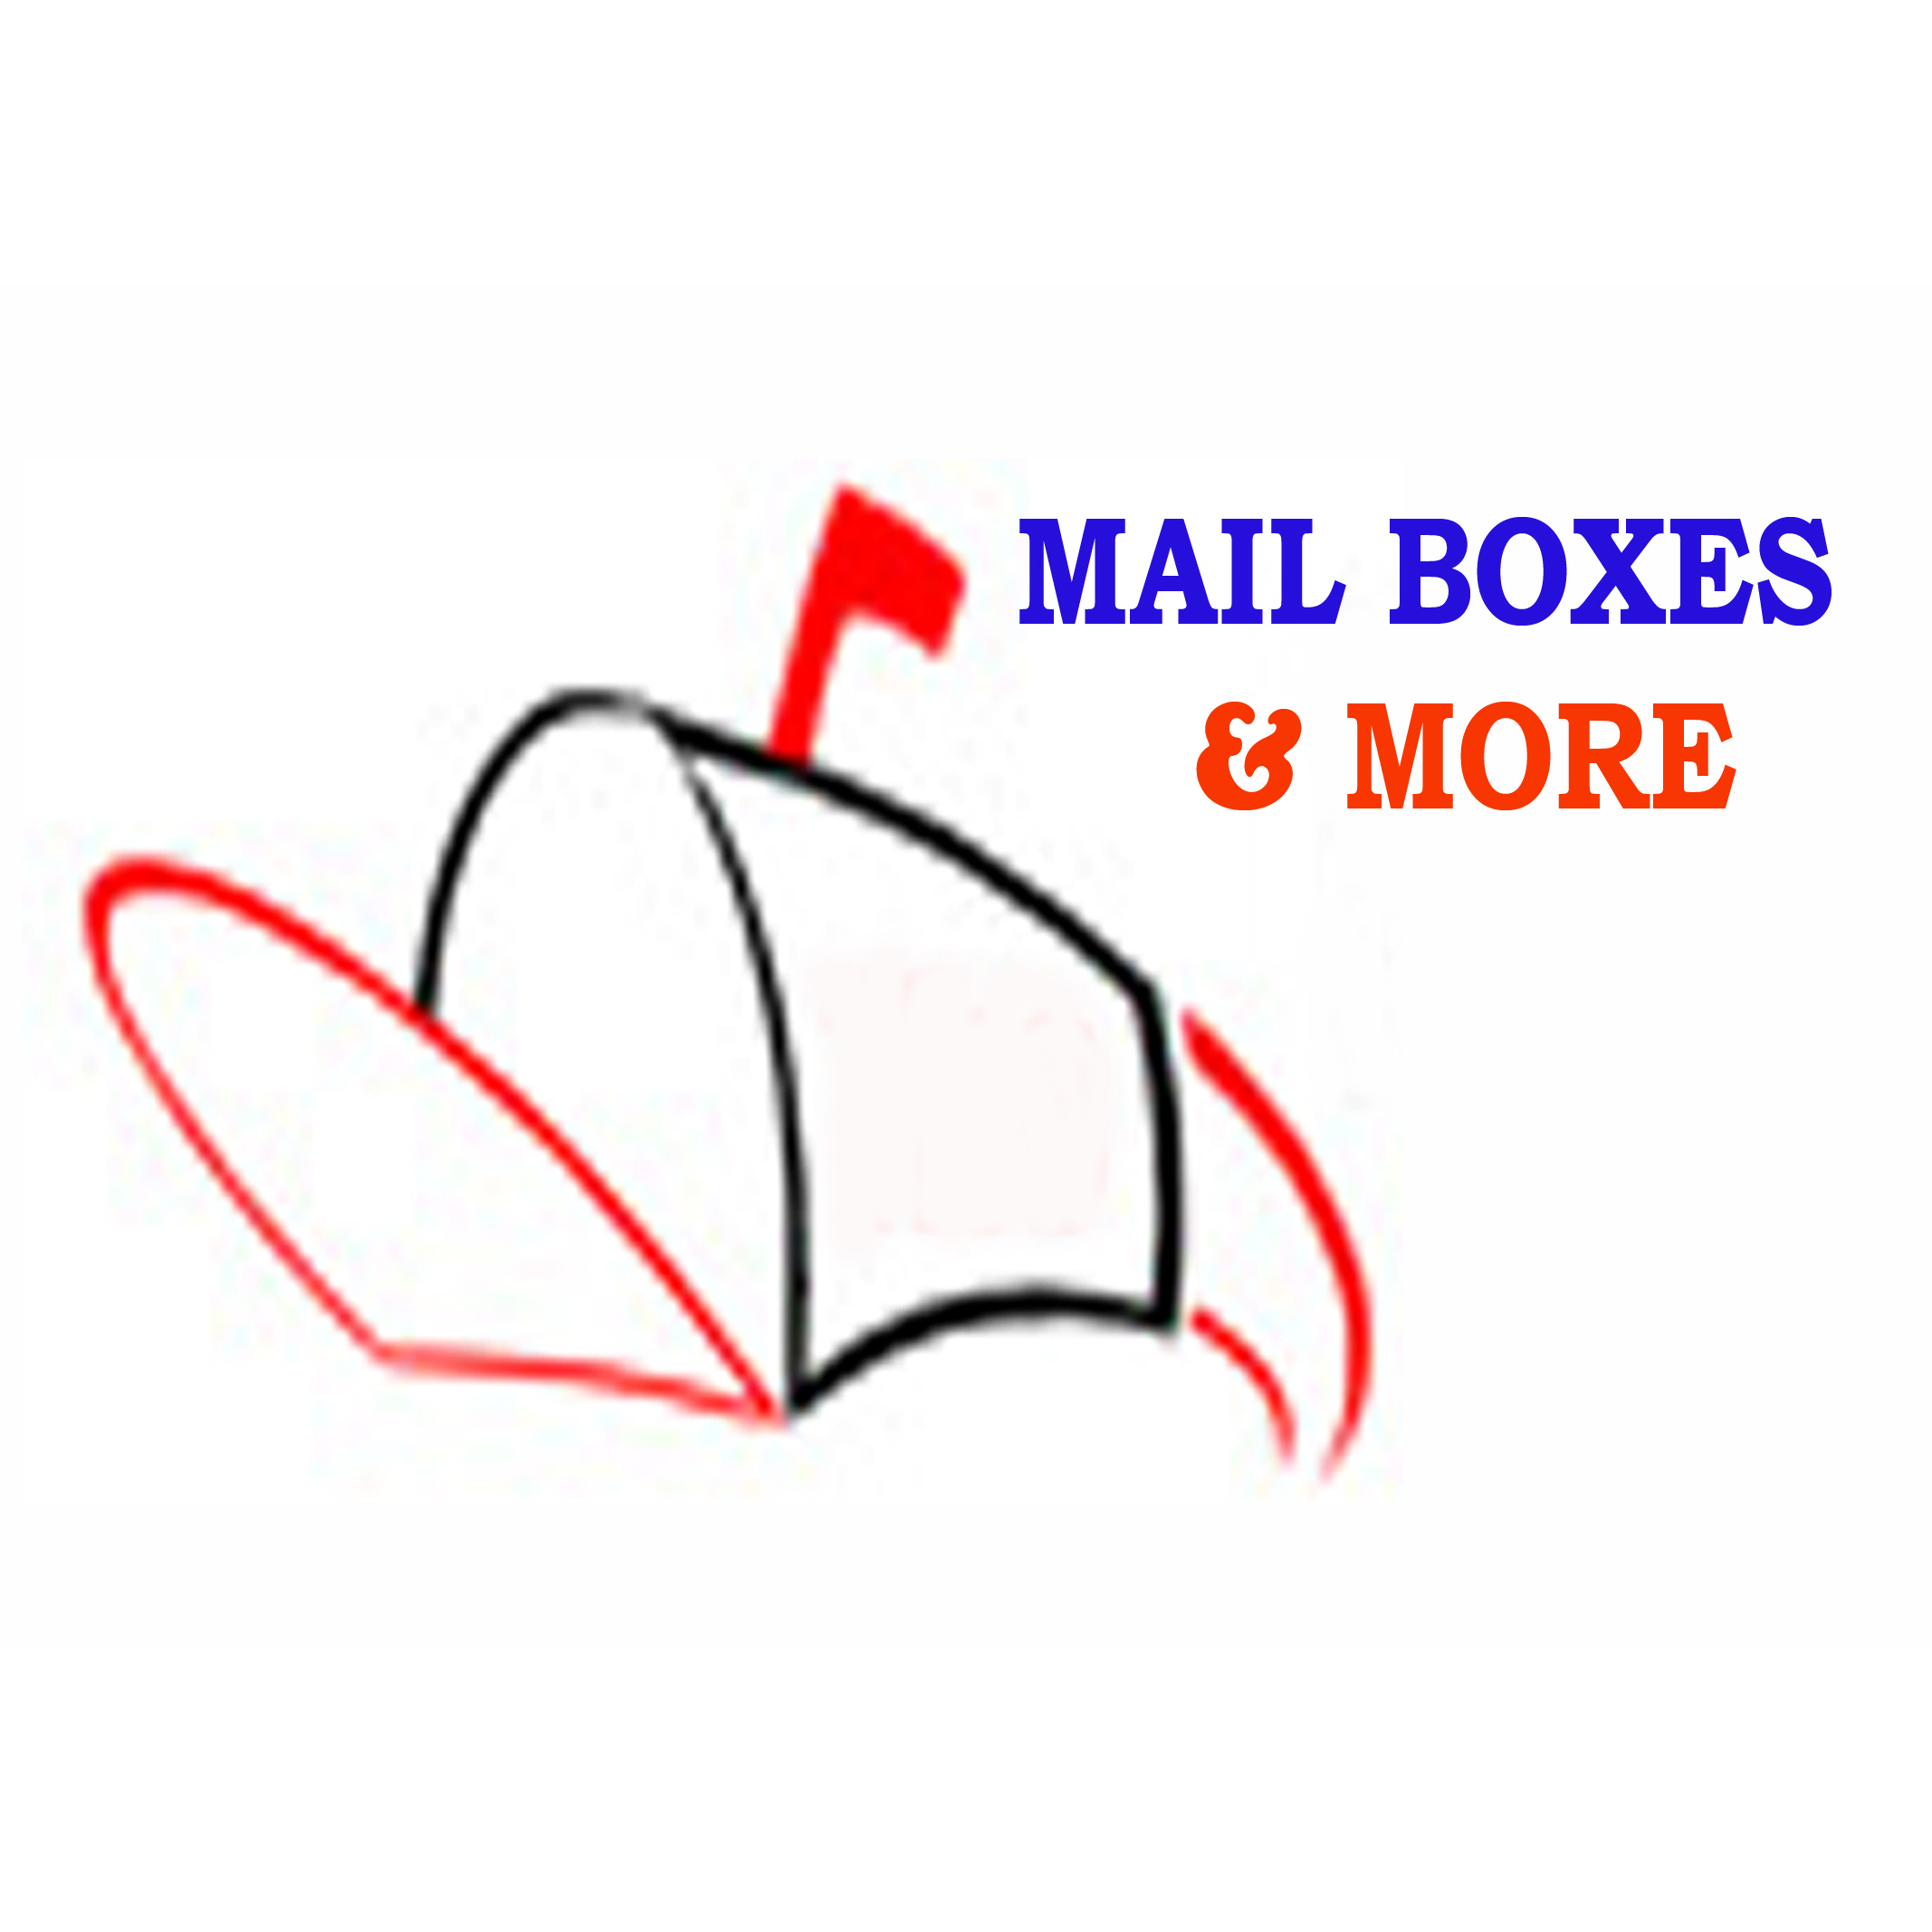 Mail Boxes & More